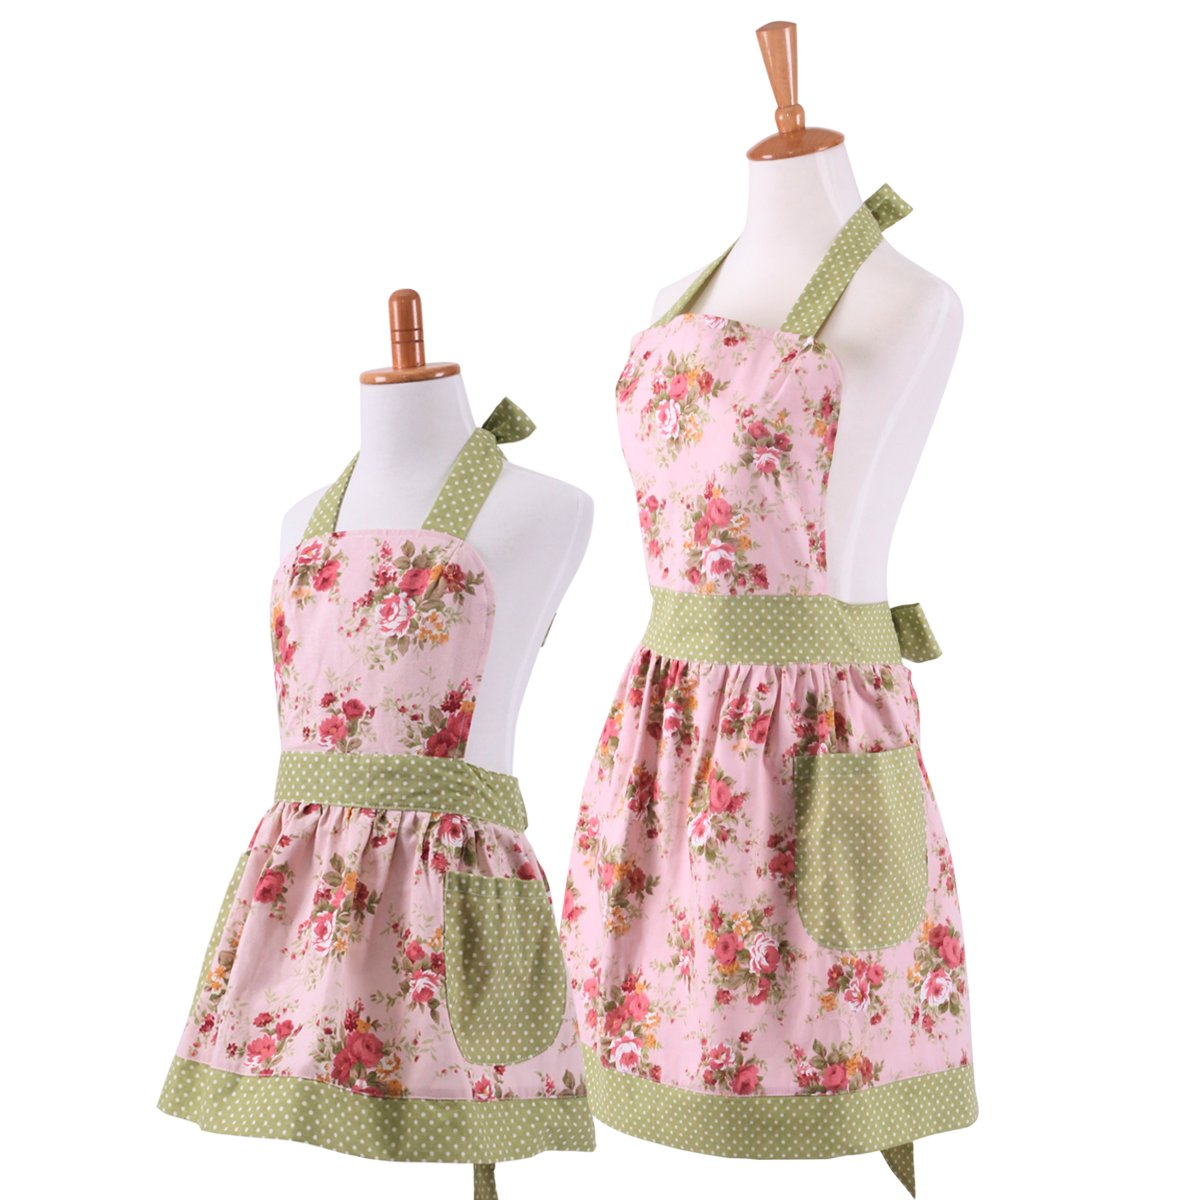 Cute Vintage Aprons, Retro Aprons And Patterns